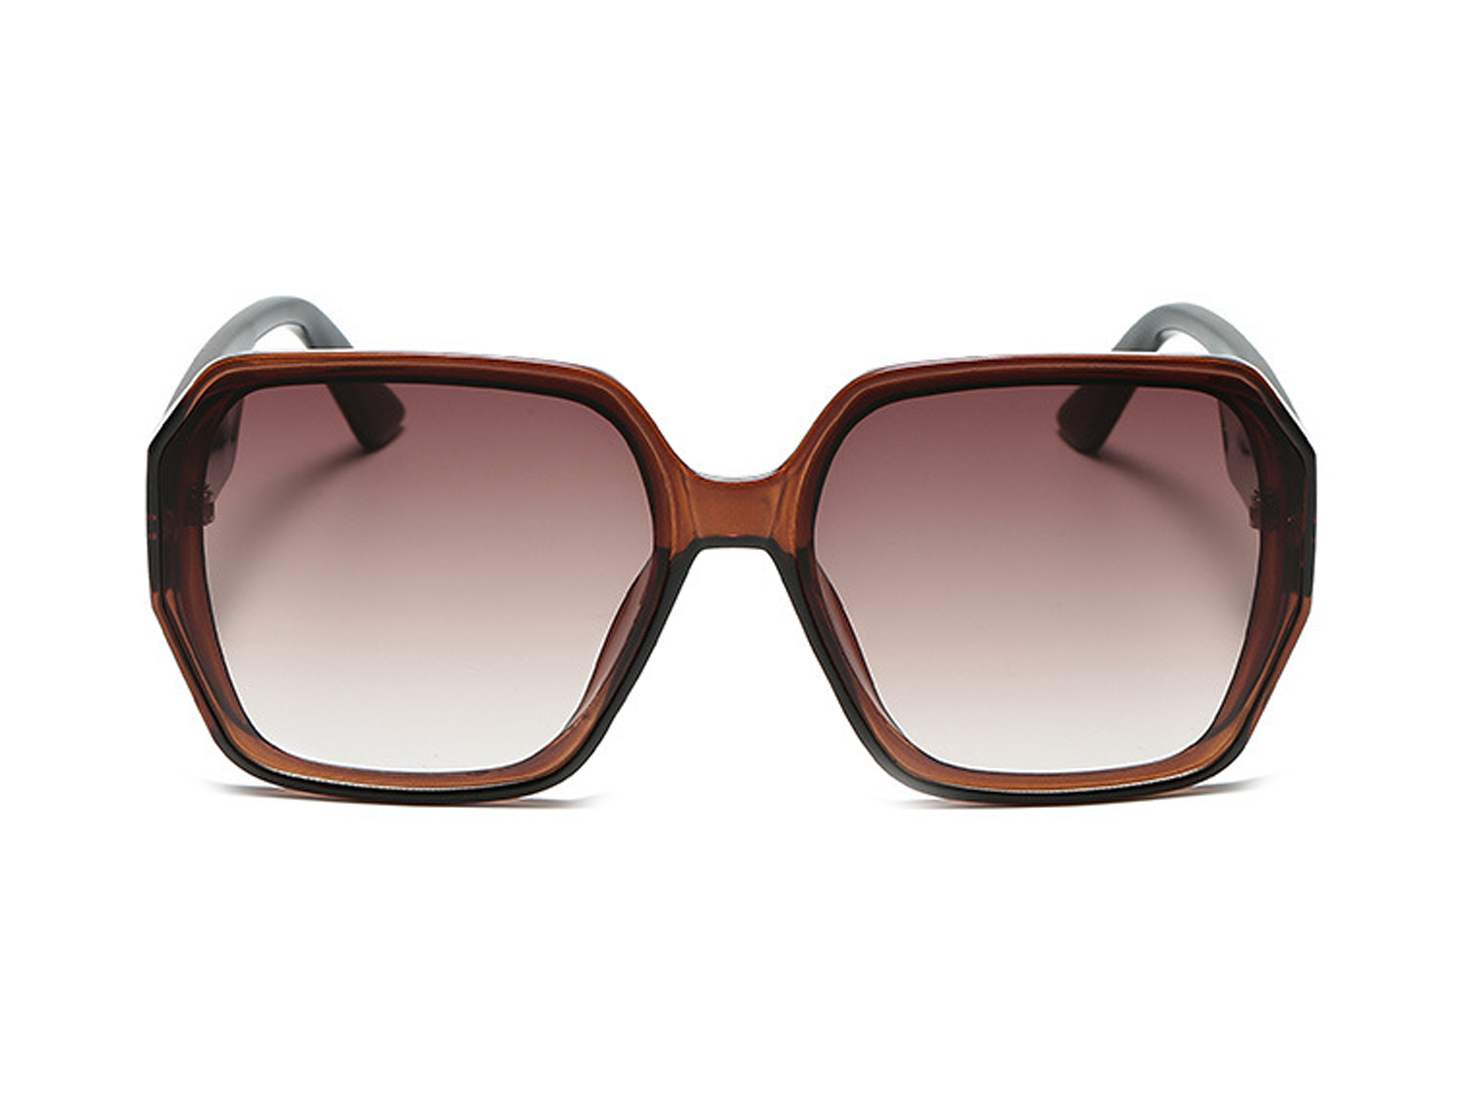 Brown Oversized Square Sunglasses -Brown - Front